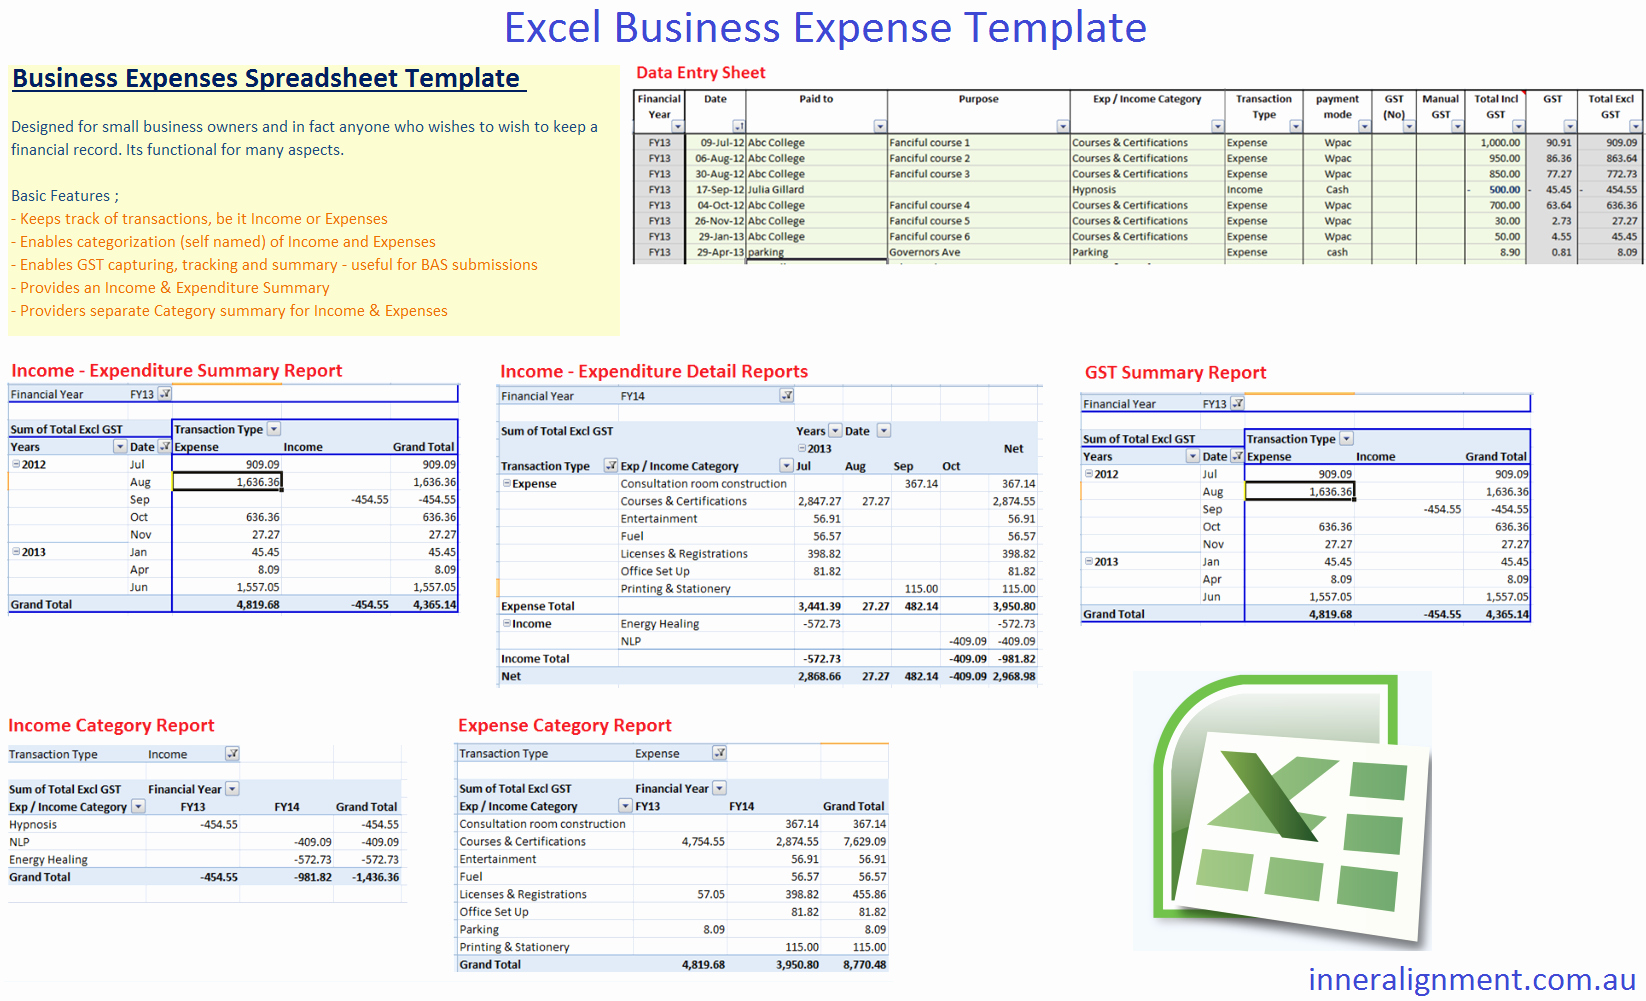 Business Expenses Excel Template Inspirational Excel – Free Business Expense Template – Inner Alignment